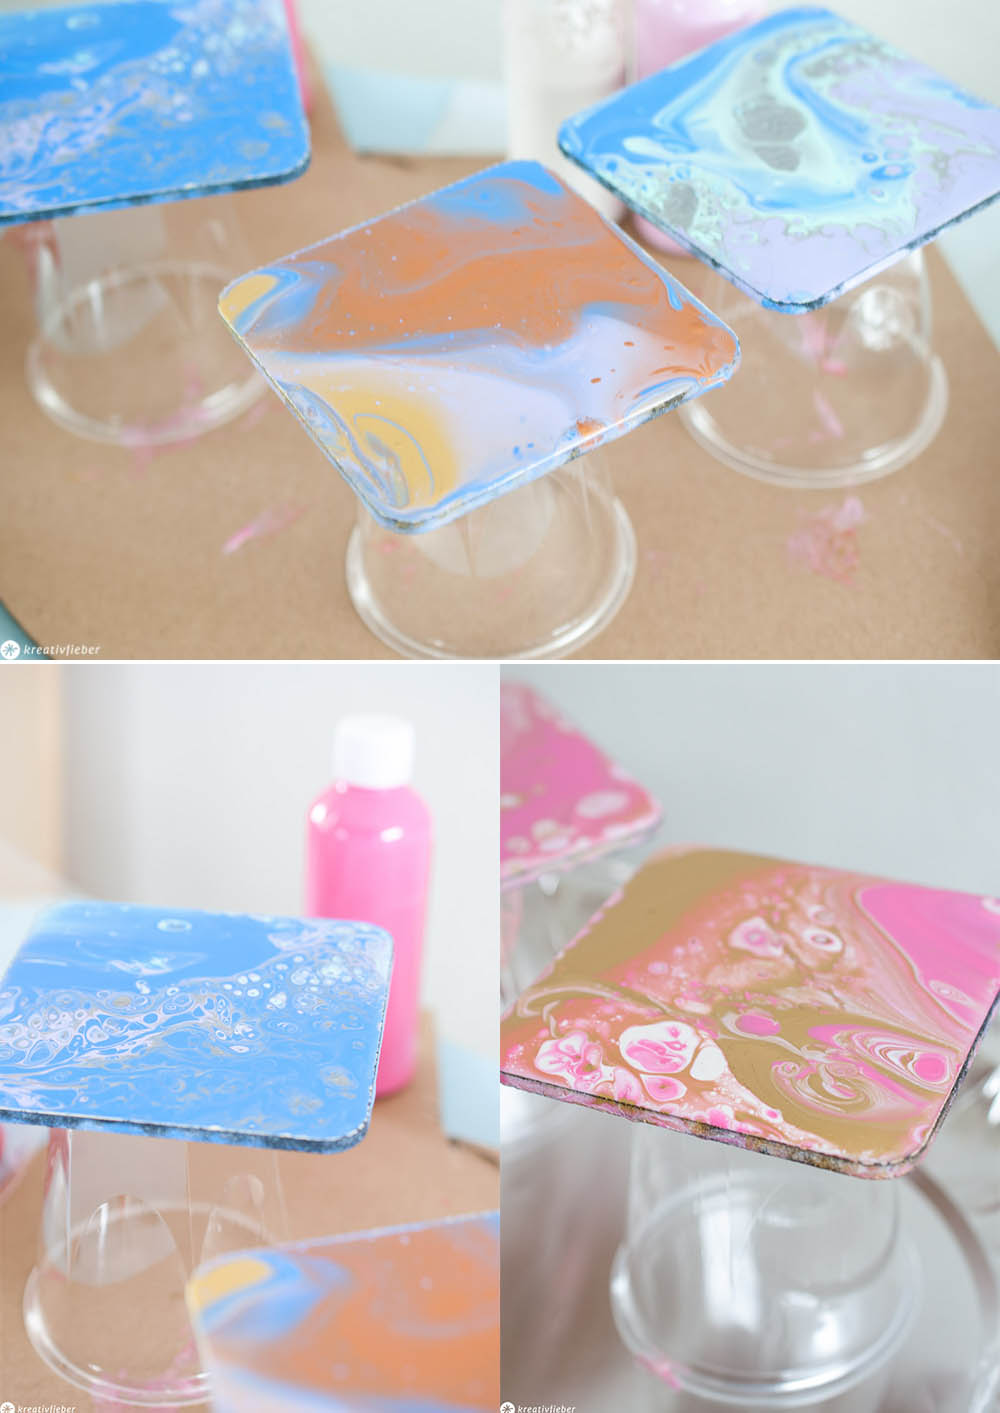 DIY Anleitung Acrylic Pouring einfach